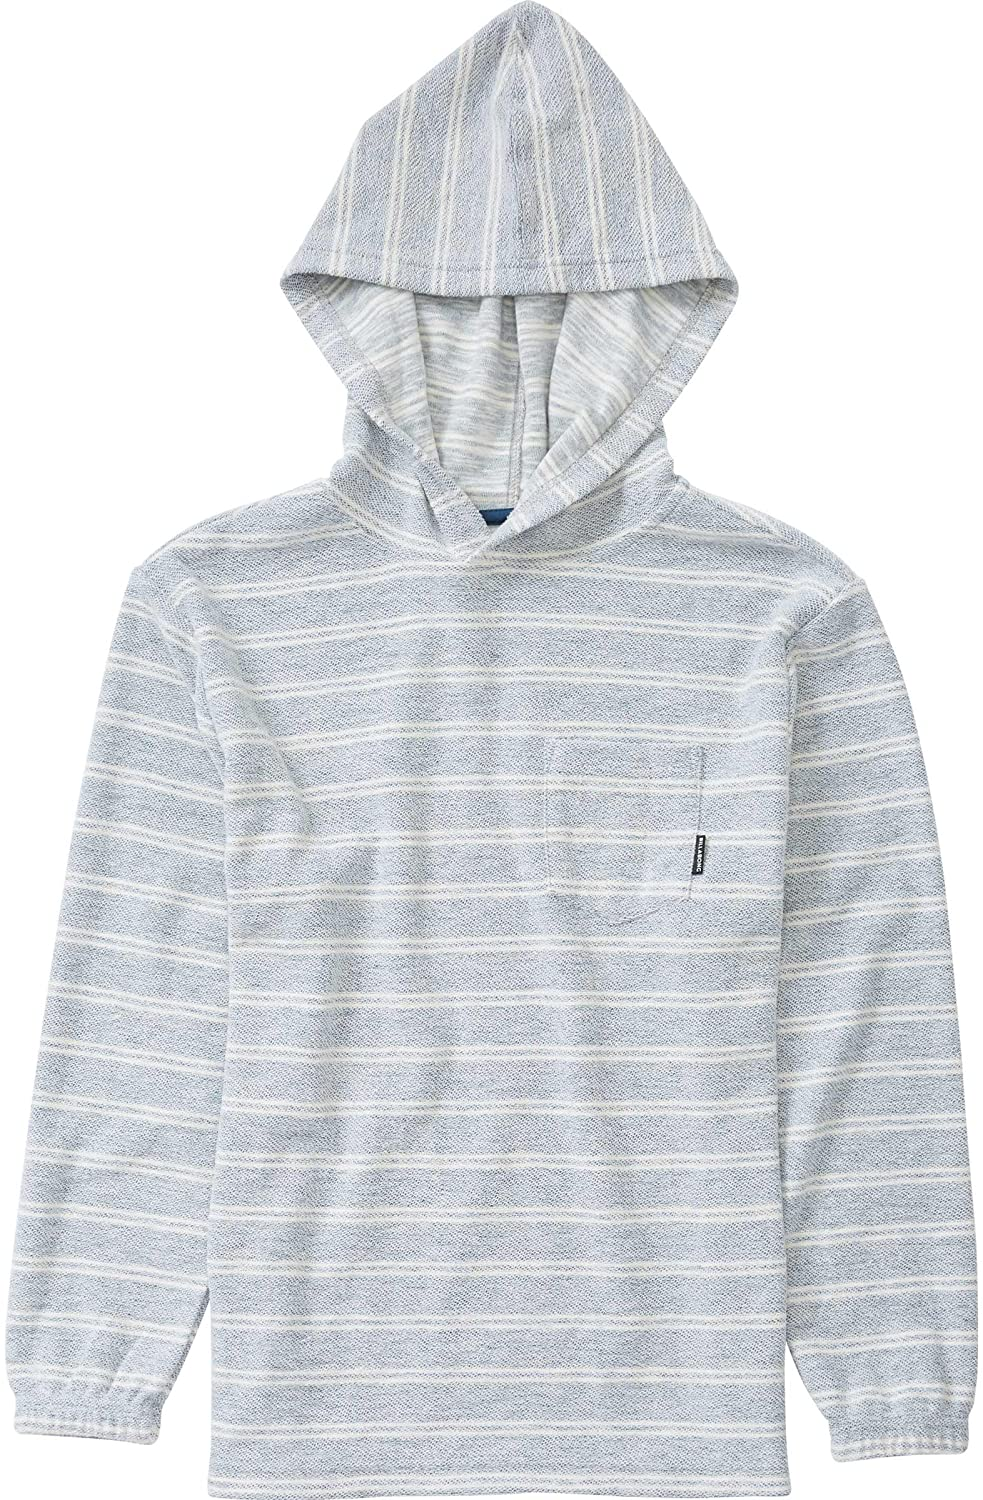 Billabong Boys' Flecker Pullover Hoodie - Indi Surf